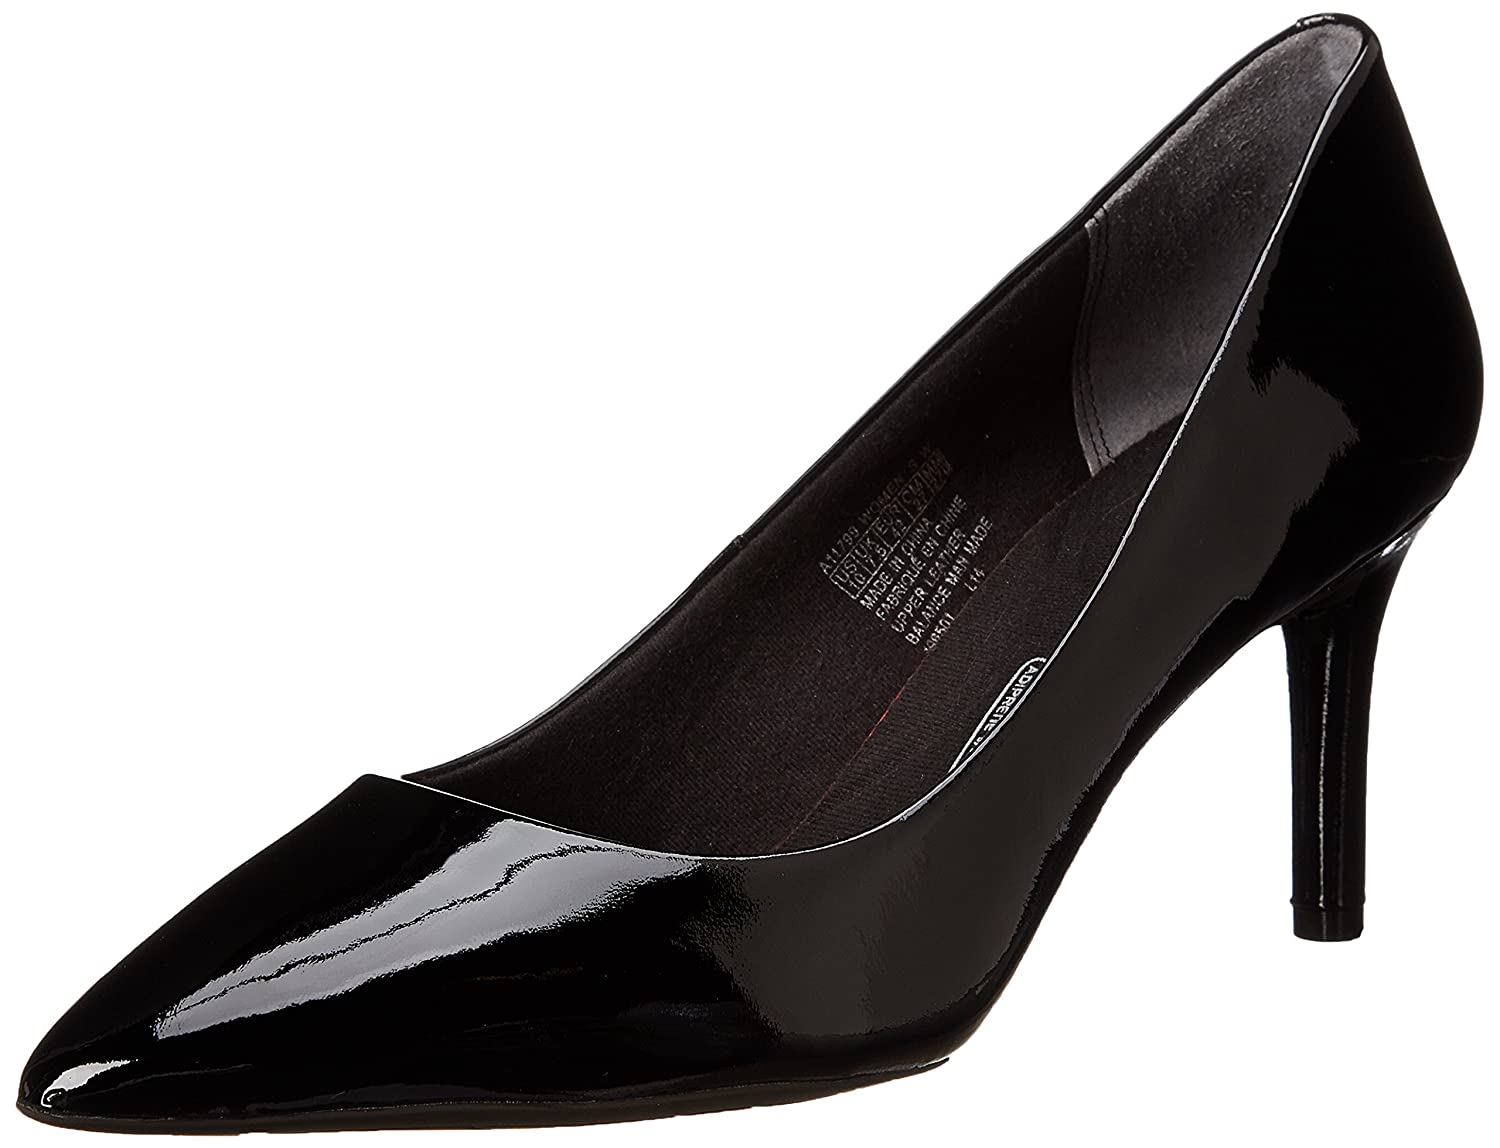 Black Patent Rockport Women's Total Motion 75mm Pointy Pump